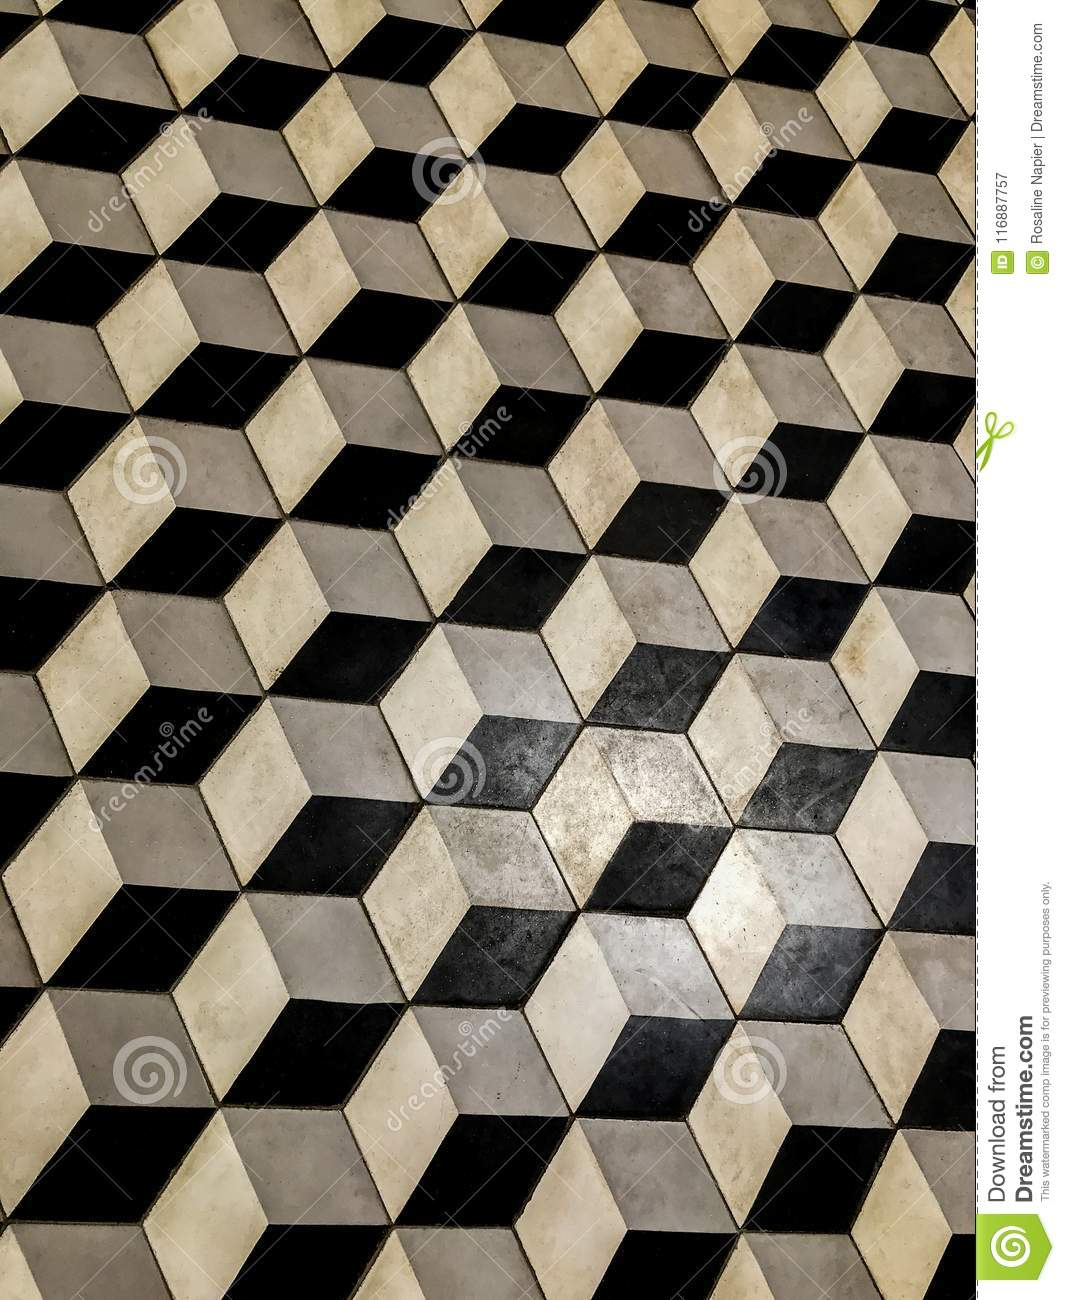 Black And White Floor Tiles Stock Image - Image of perspective ...